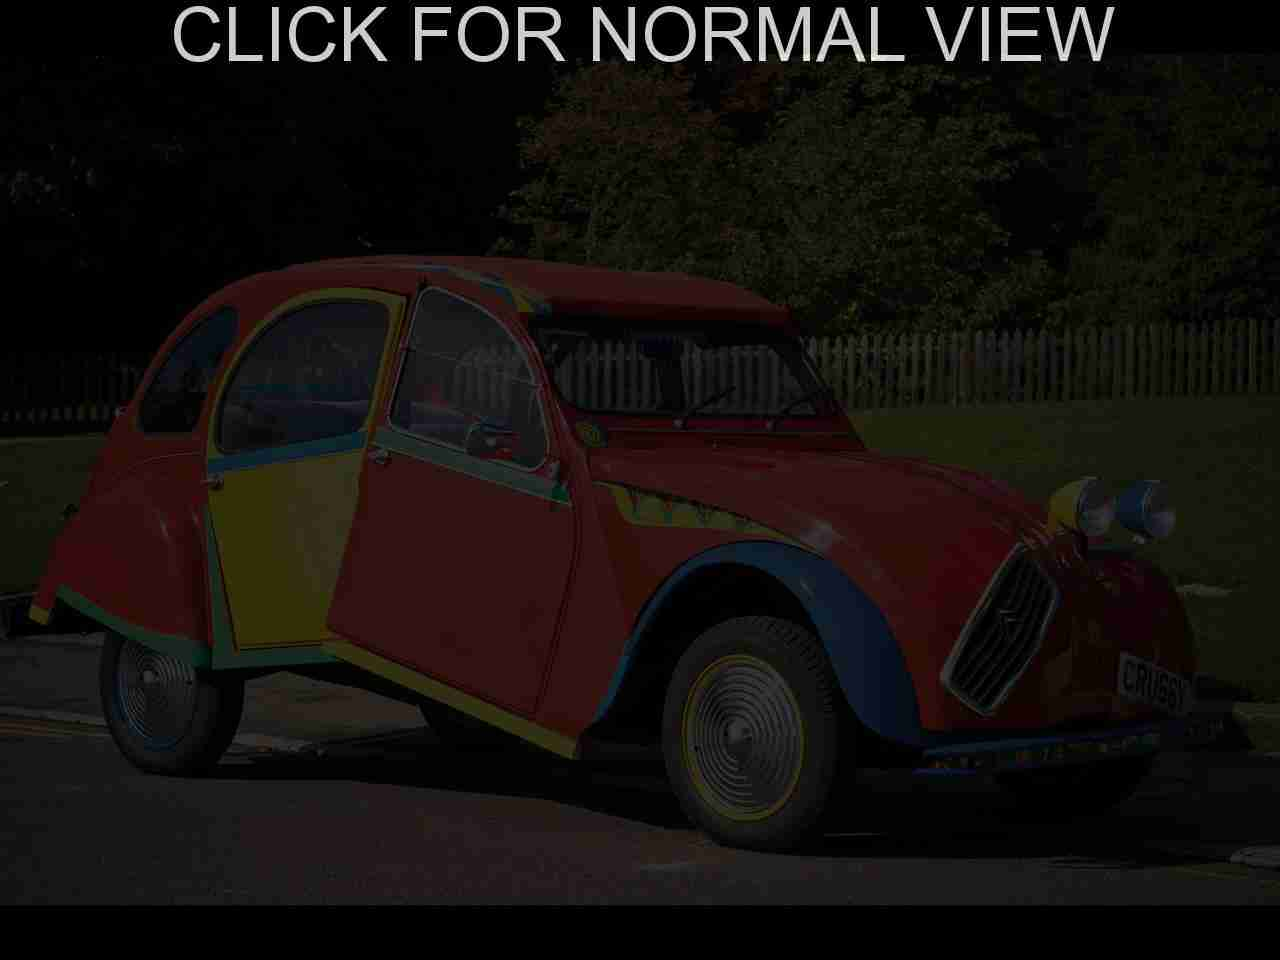 citroen 2 cv seriess #14